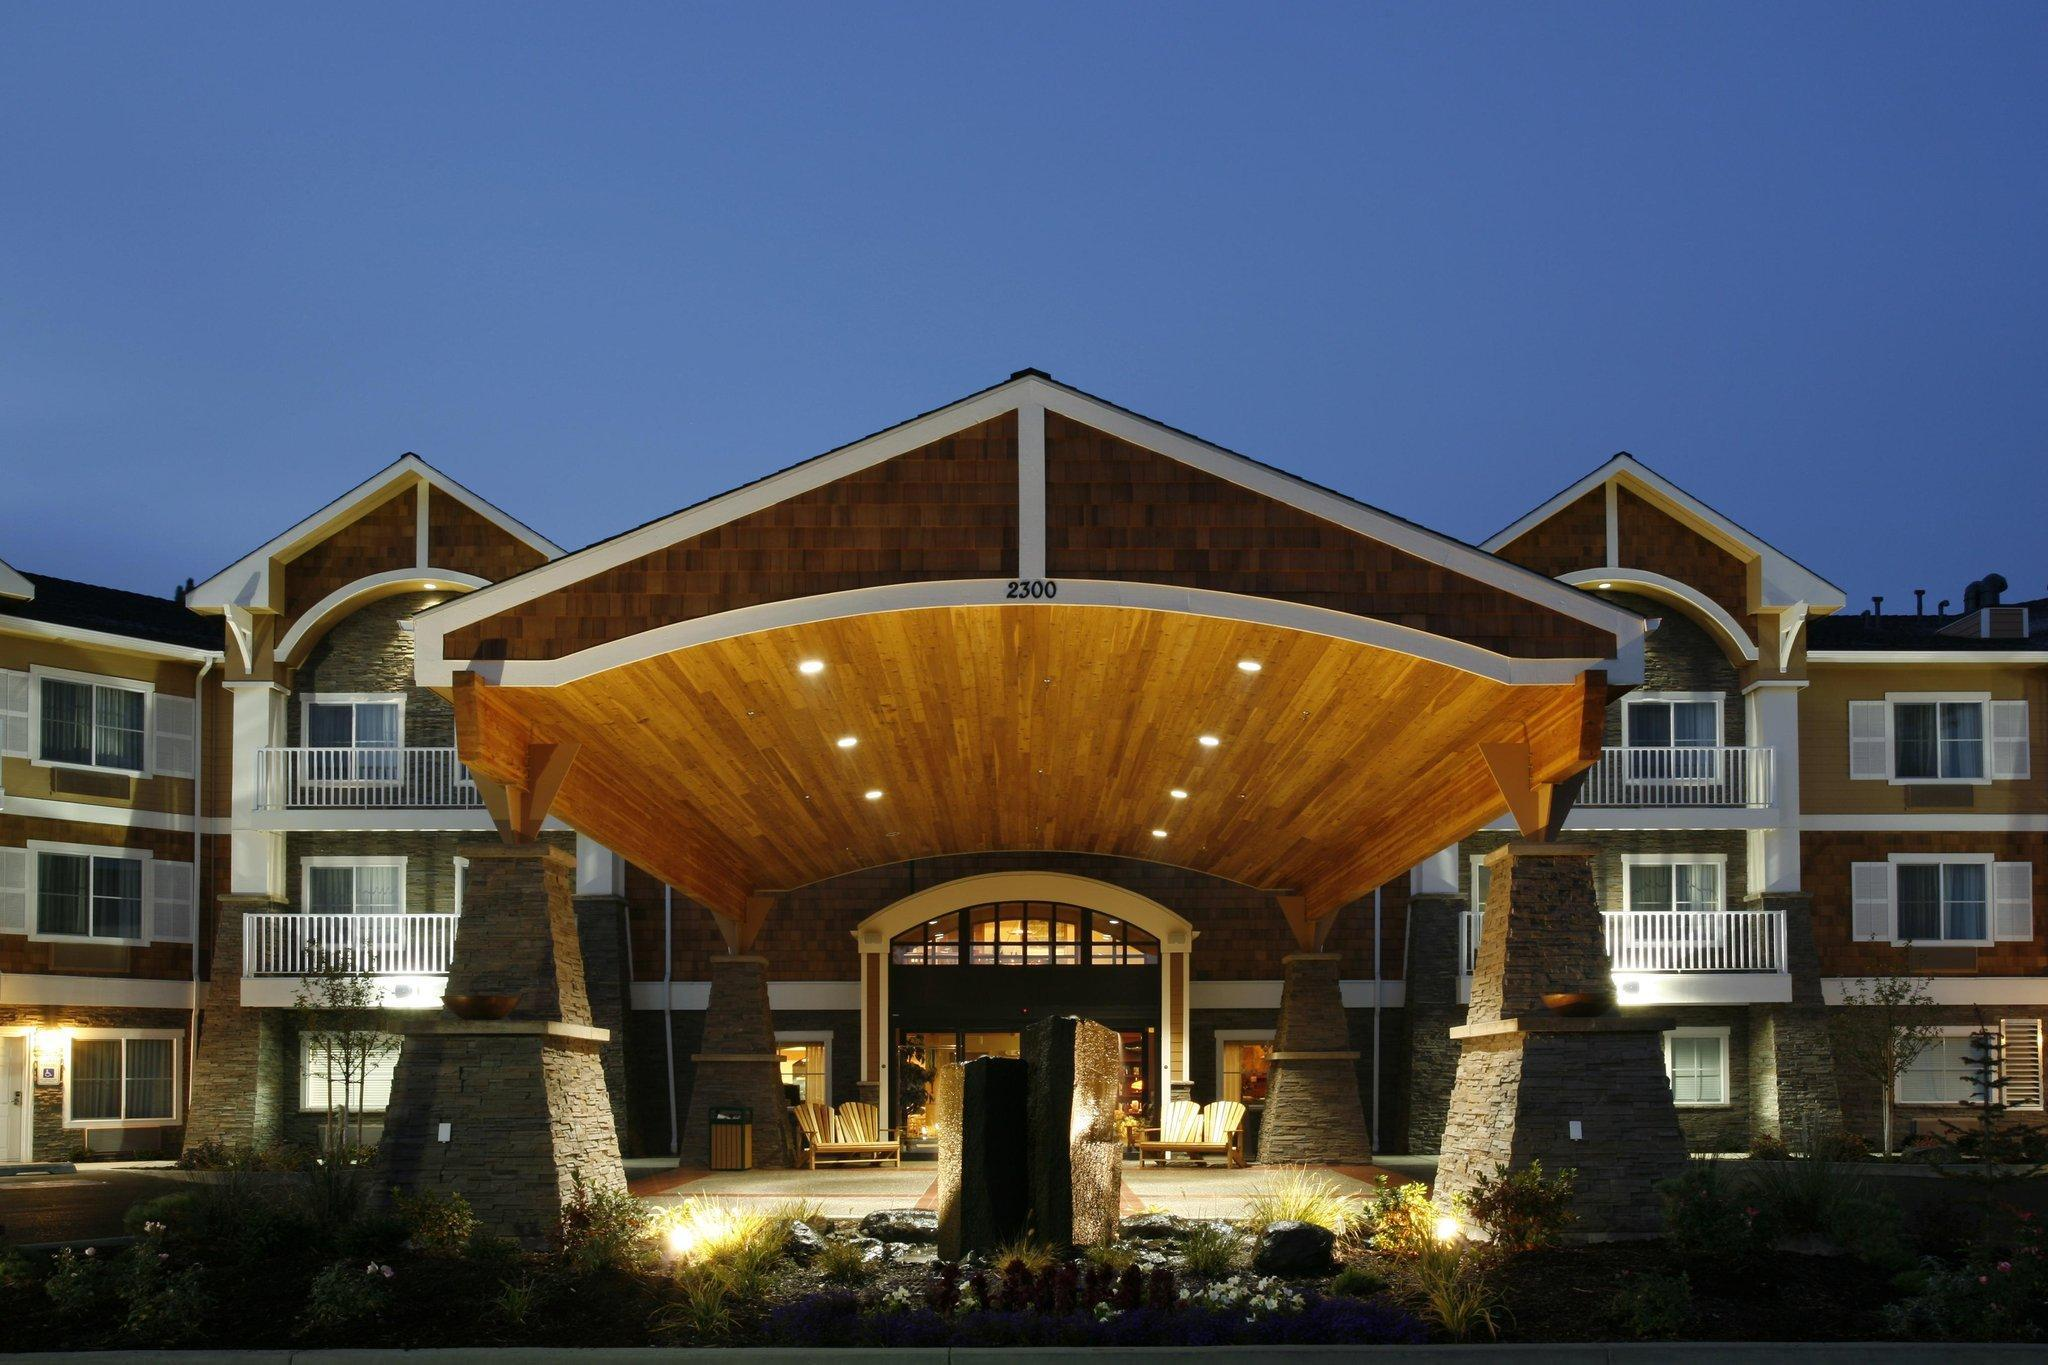 Holiday Inn Express Hotel And Suites Coeur D'Alene I 90 Exit 11